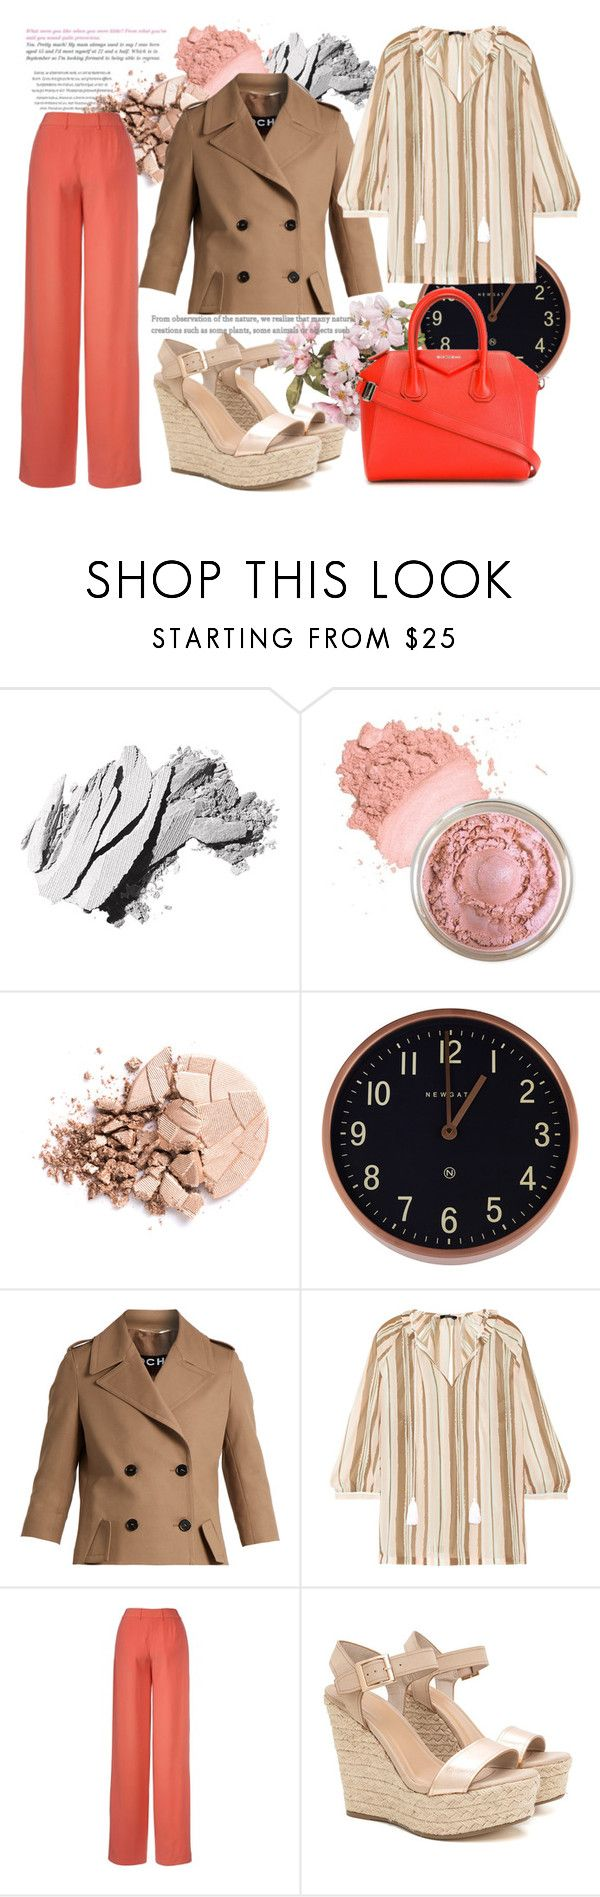 """outfit"" by aletraghetti on Polyvore featuring moda, Bobbi Brown Cosmetics, Anastasia Beverly Hills, Newgate, Rochas, Raoul y Givenchy"